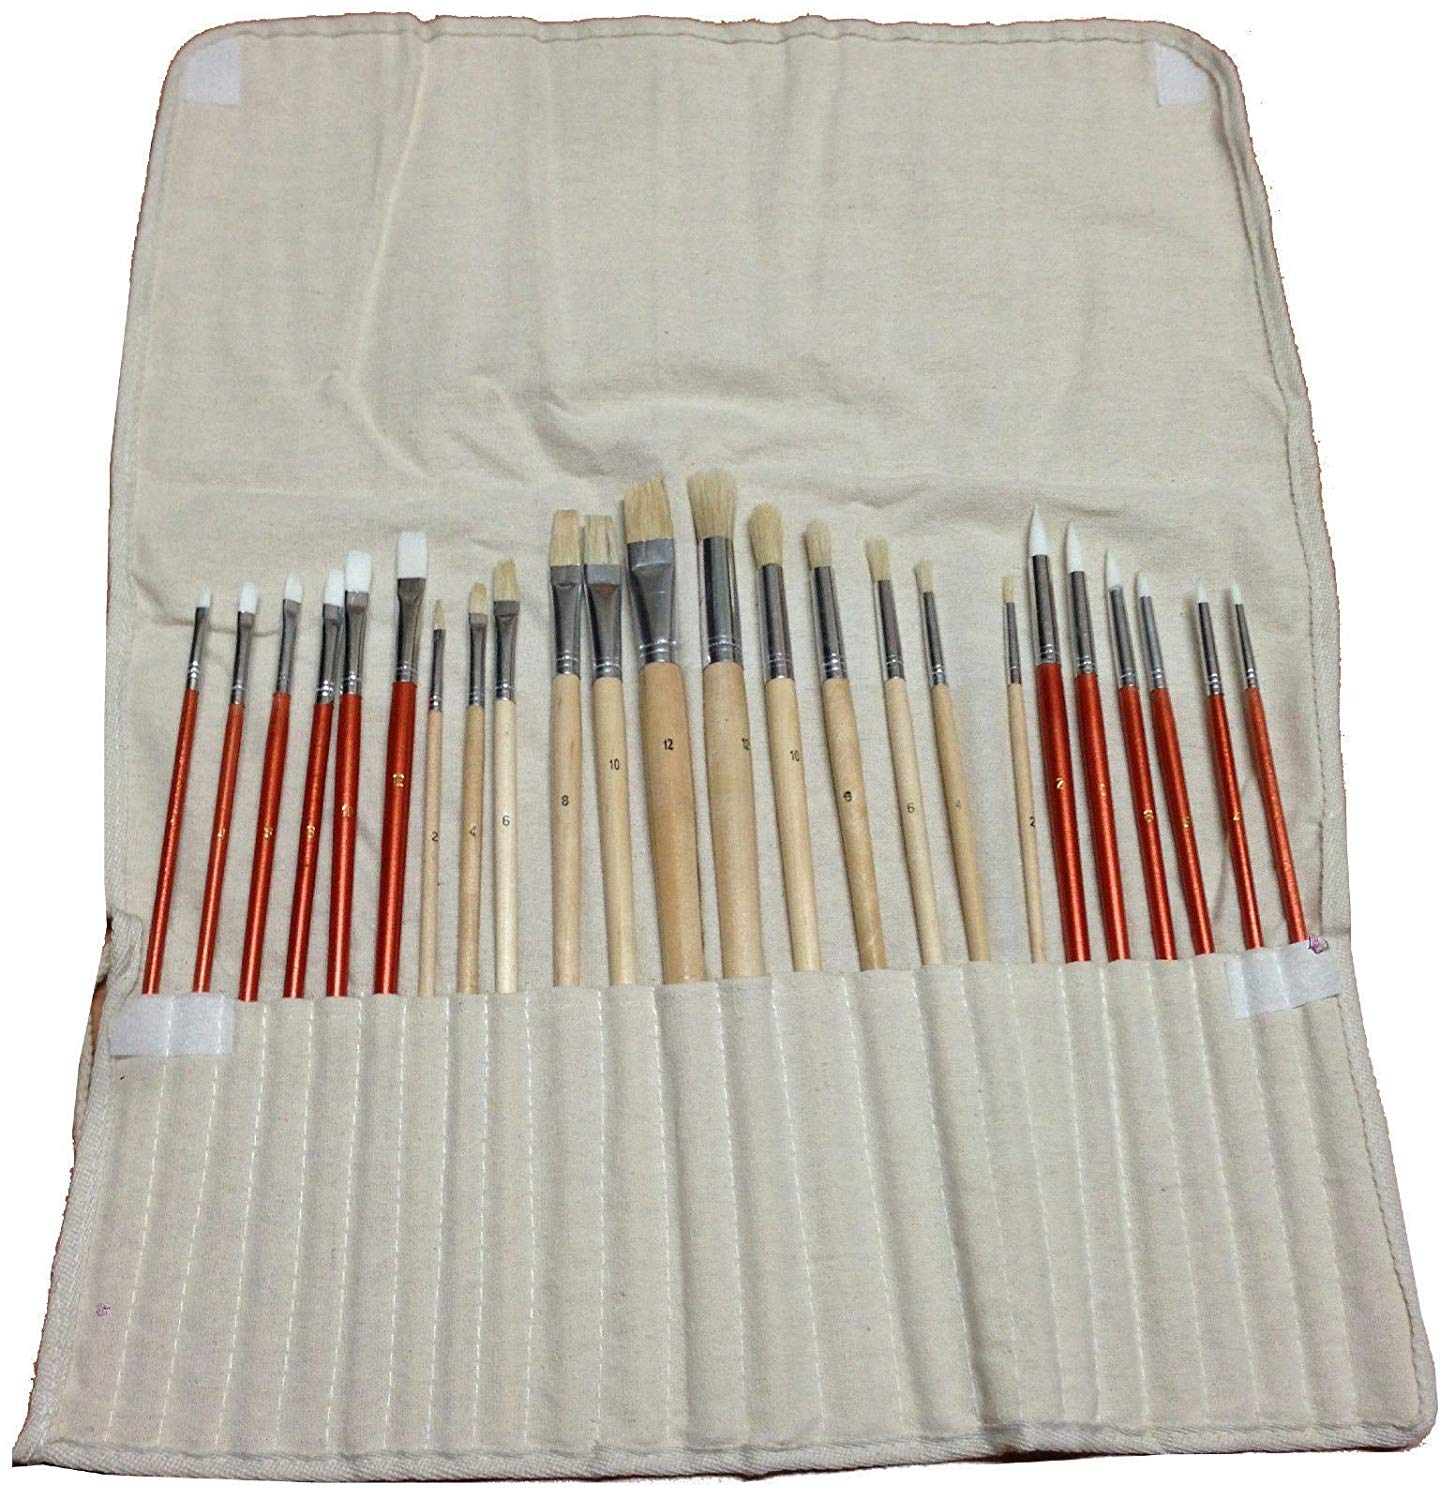 24 Paint BRUSH SET for Oil Acrylic Art Craft Artist Painting+ Canvas Roll Up Bag